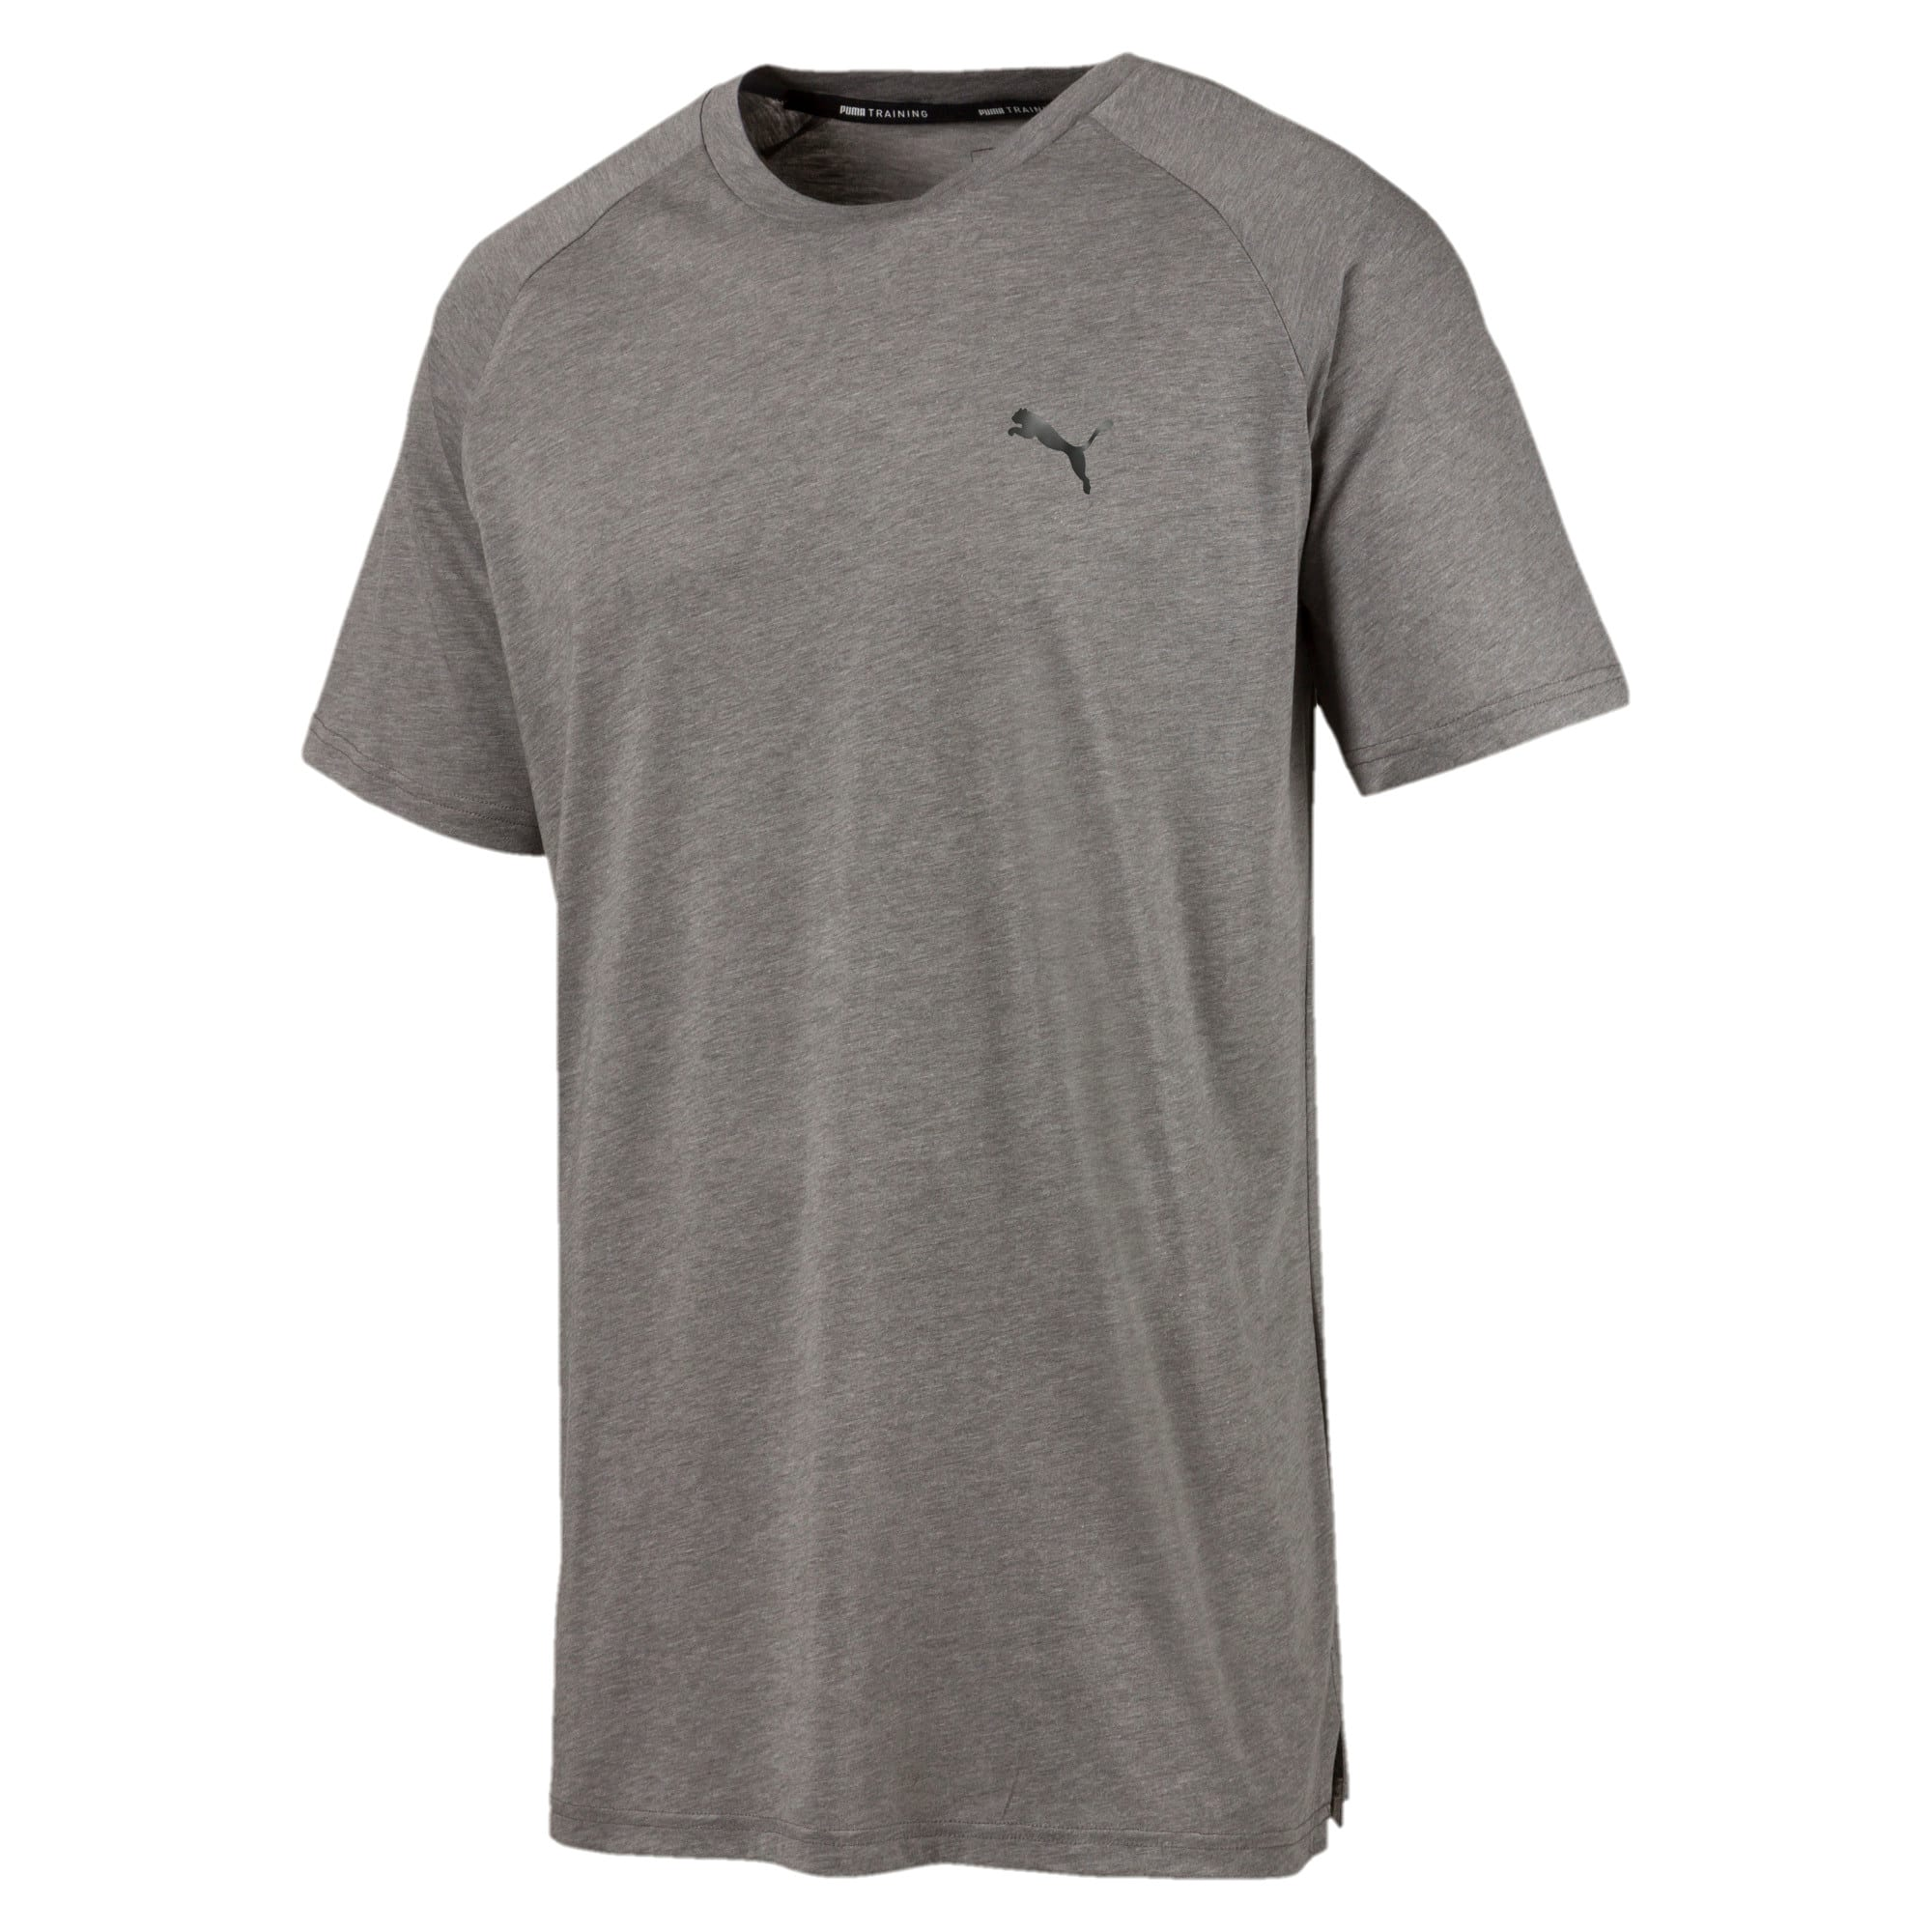 Thumbnail 4 of Reactive Herren T-Shirt, Medium Gray Heather, medium